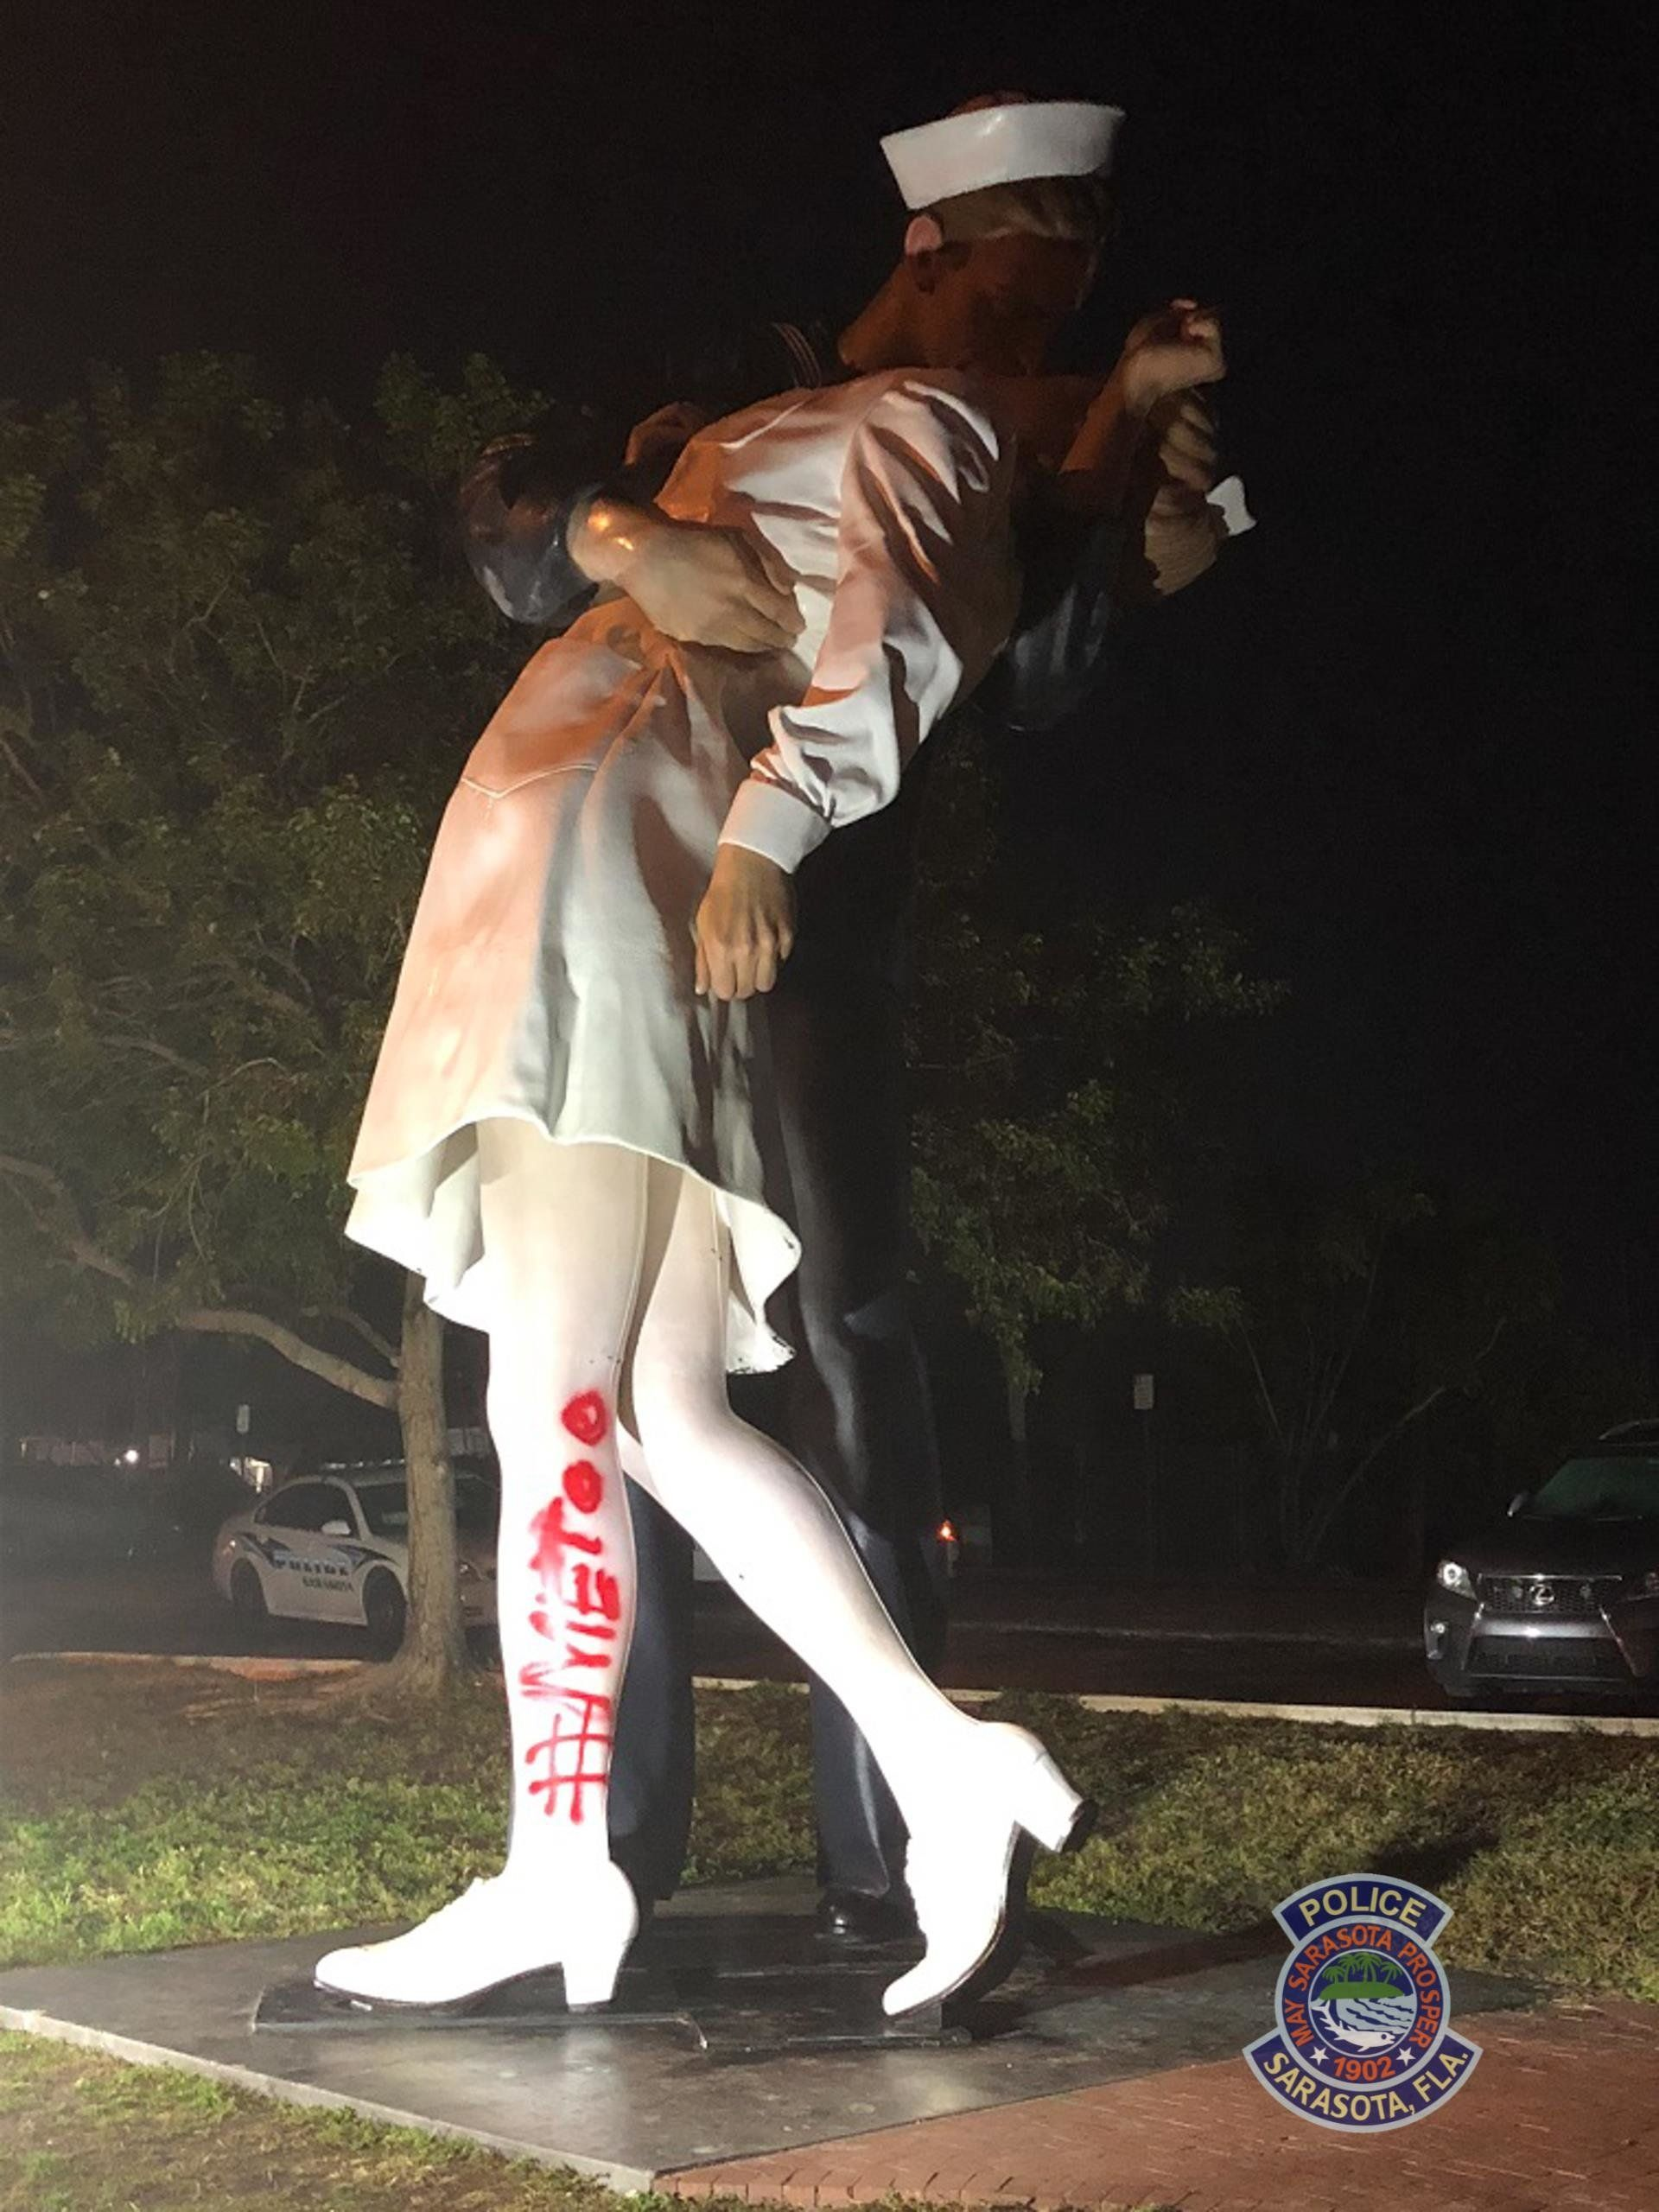 """The statue, called Unconditional Surrender, was found spraypainted with the """"MeToo"""" hashtag early Tuesday morning, police sai"""